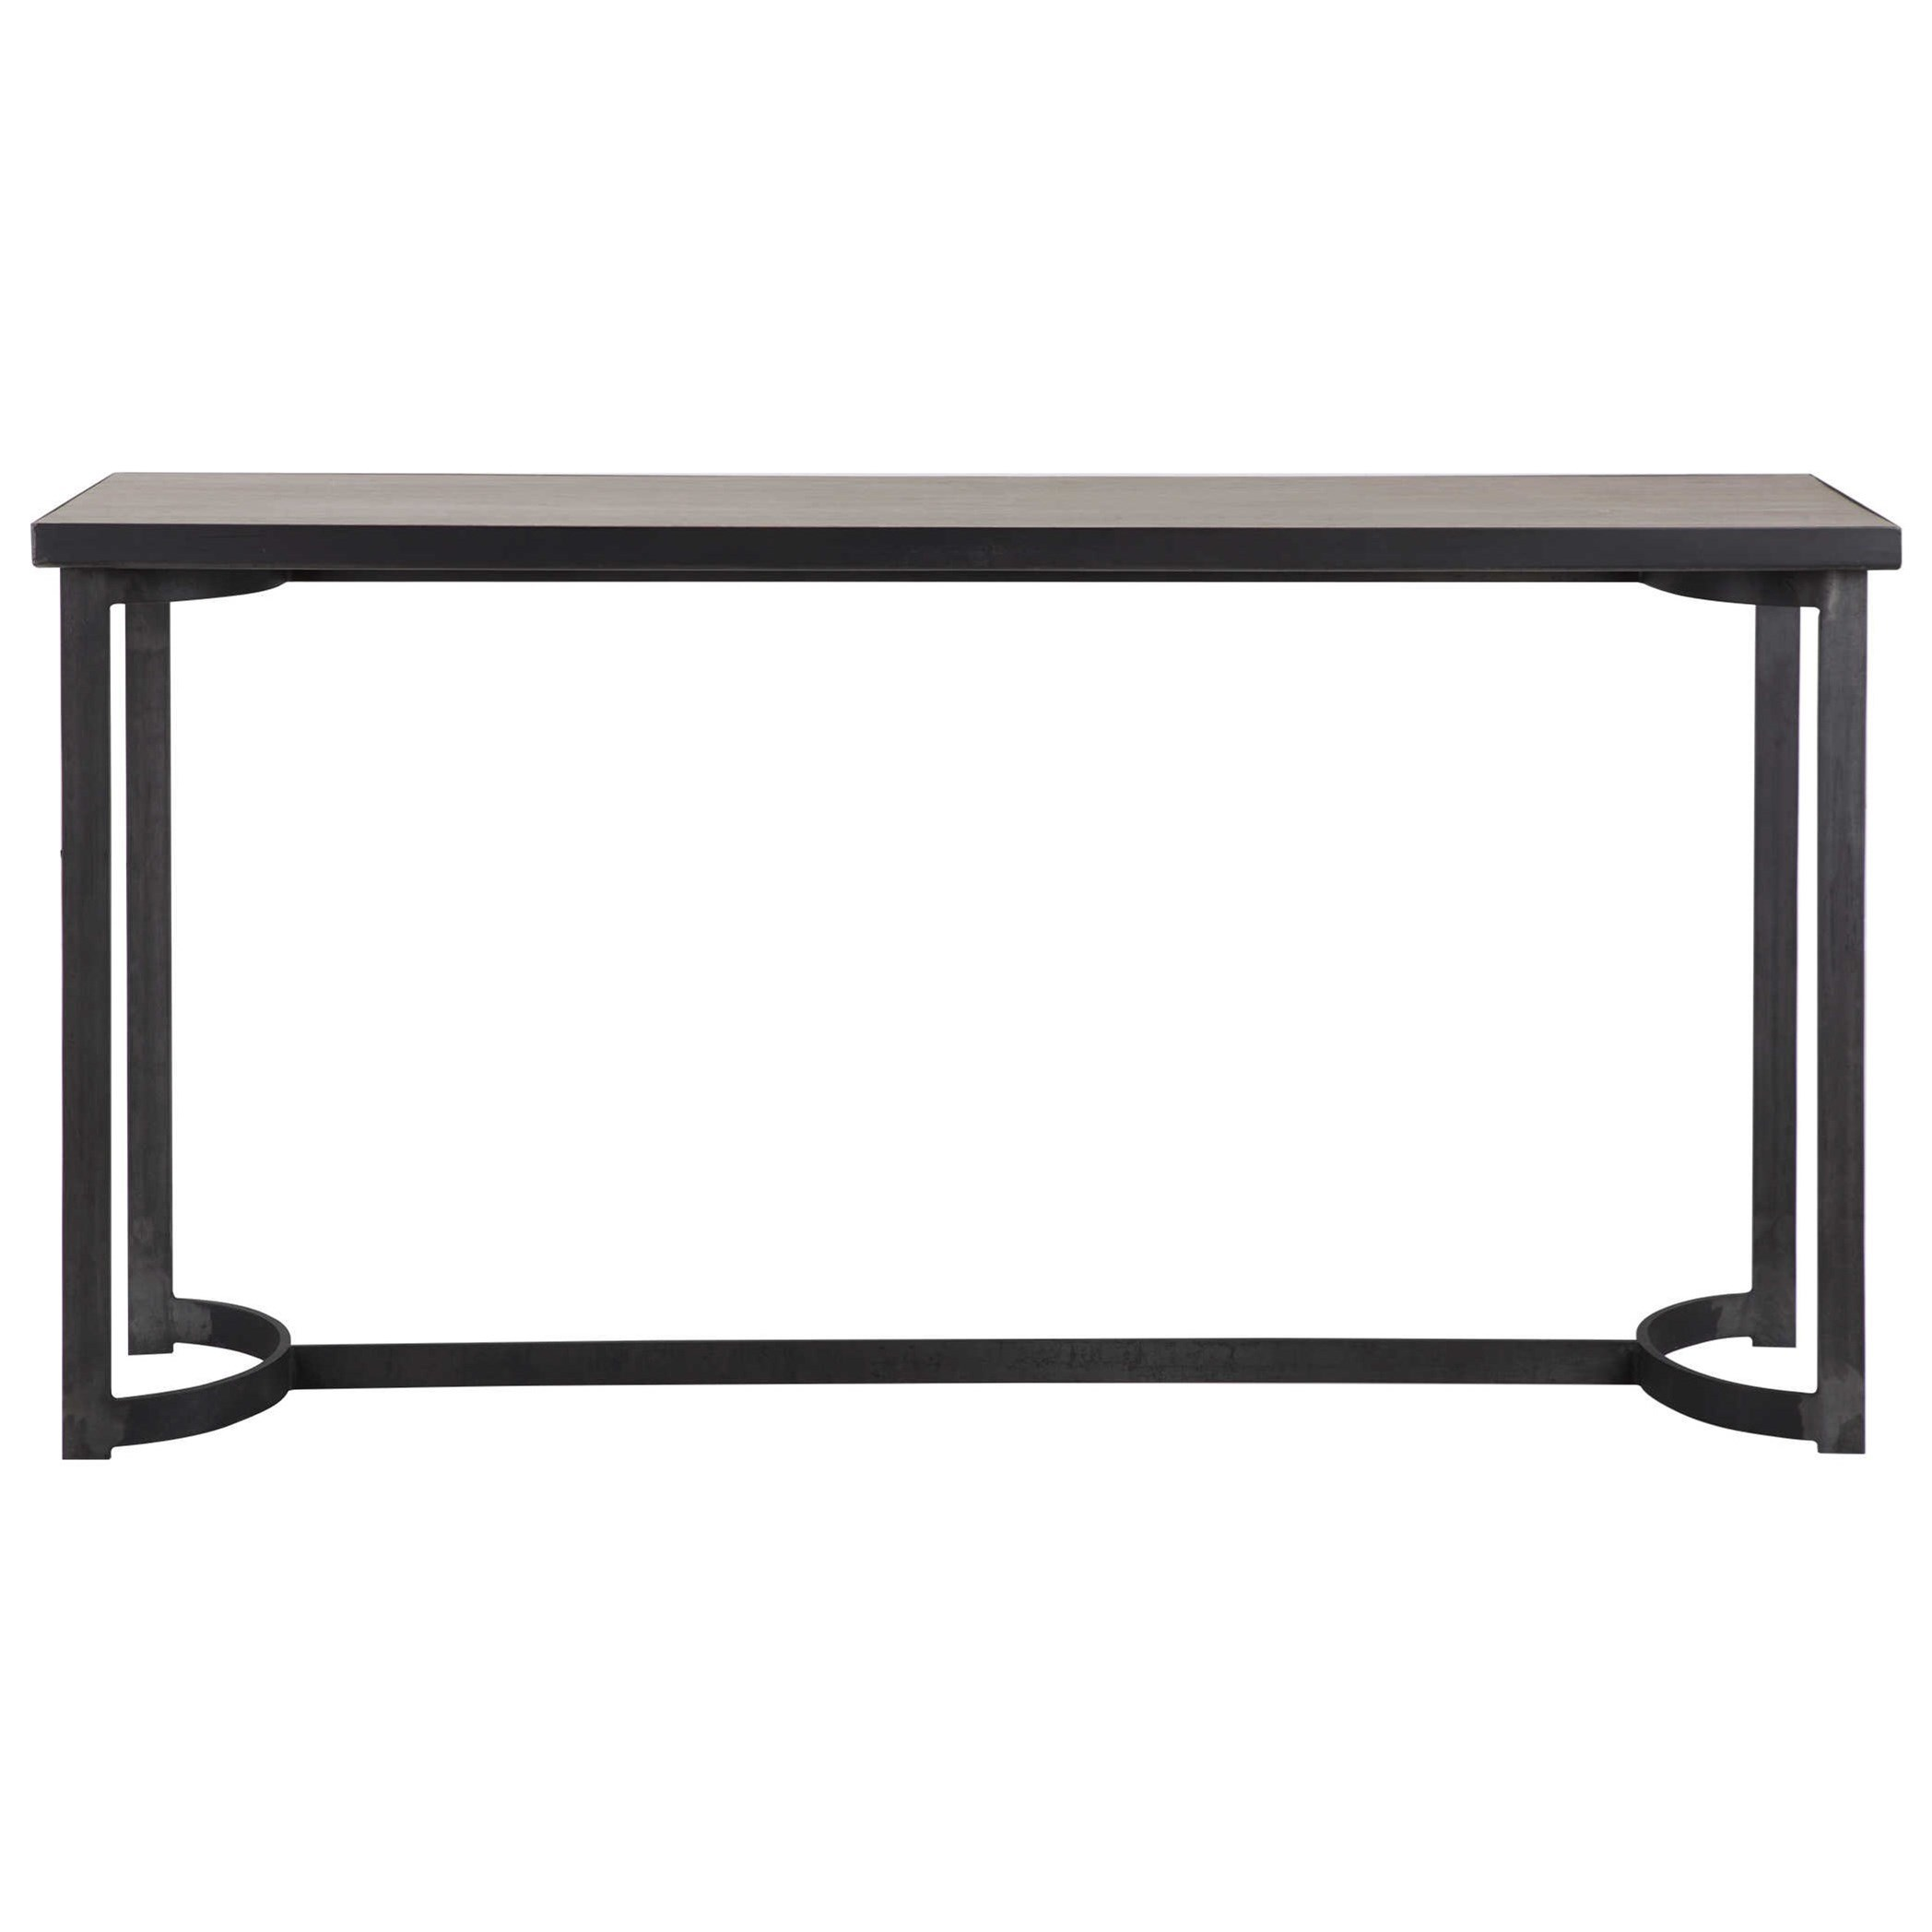 Accent Furniture - Occasional Tables Basuto Steel Console Table by Uttermost at Mueller Furniture